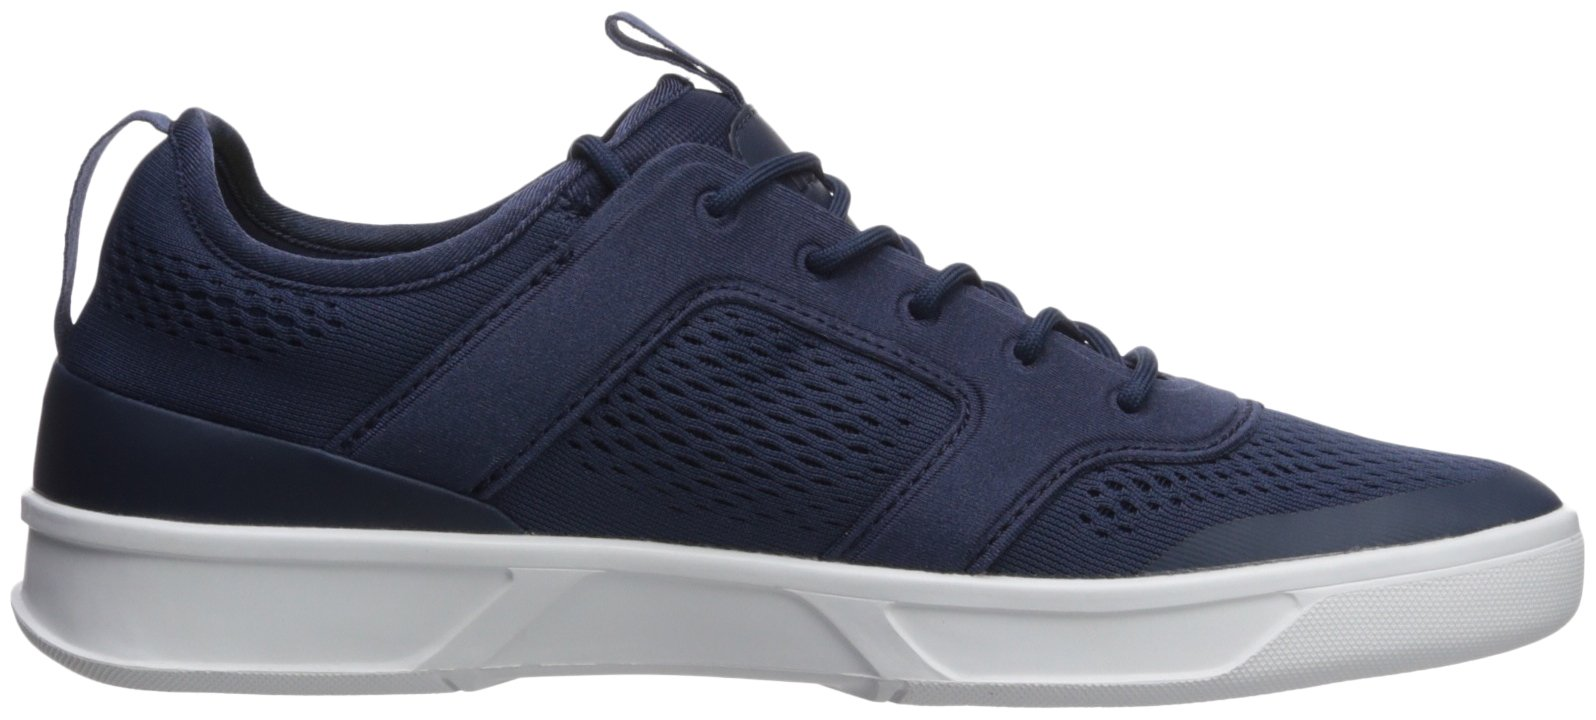 Lacoste Men's Explorateur Sport Sneaker, Navy, 9.5 M US by Lacoste (Image #7)